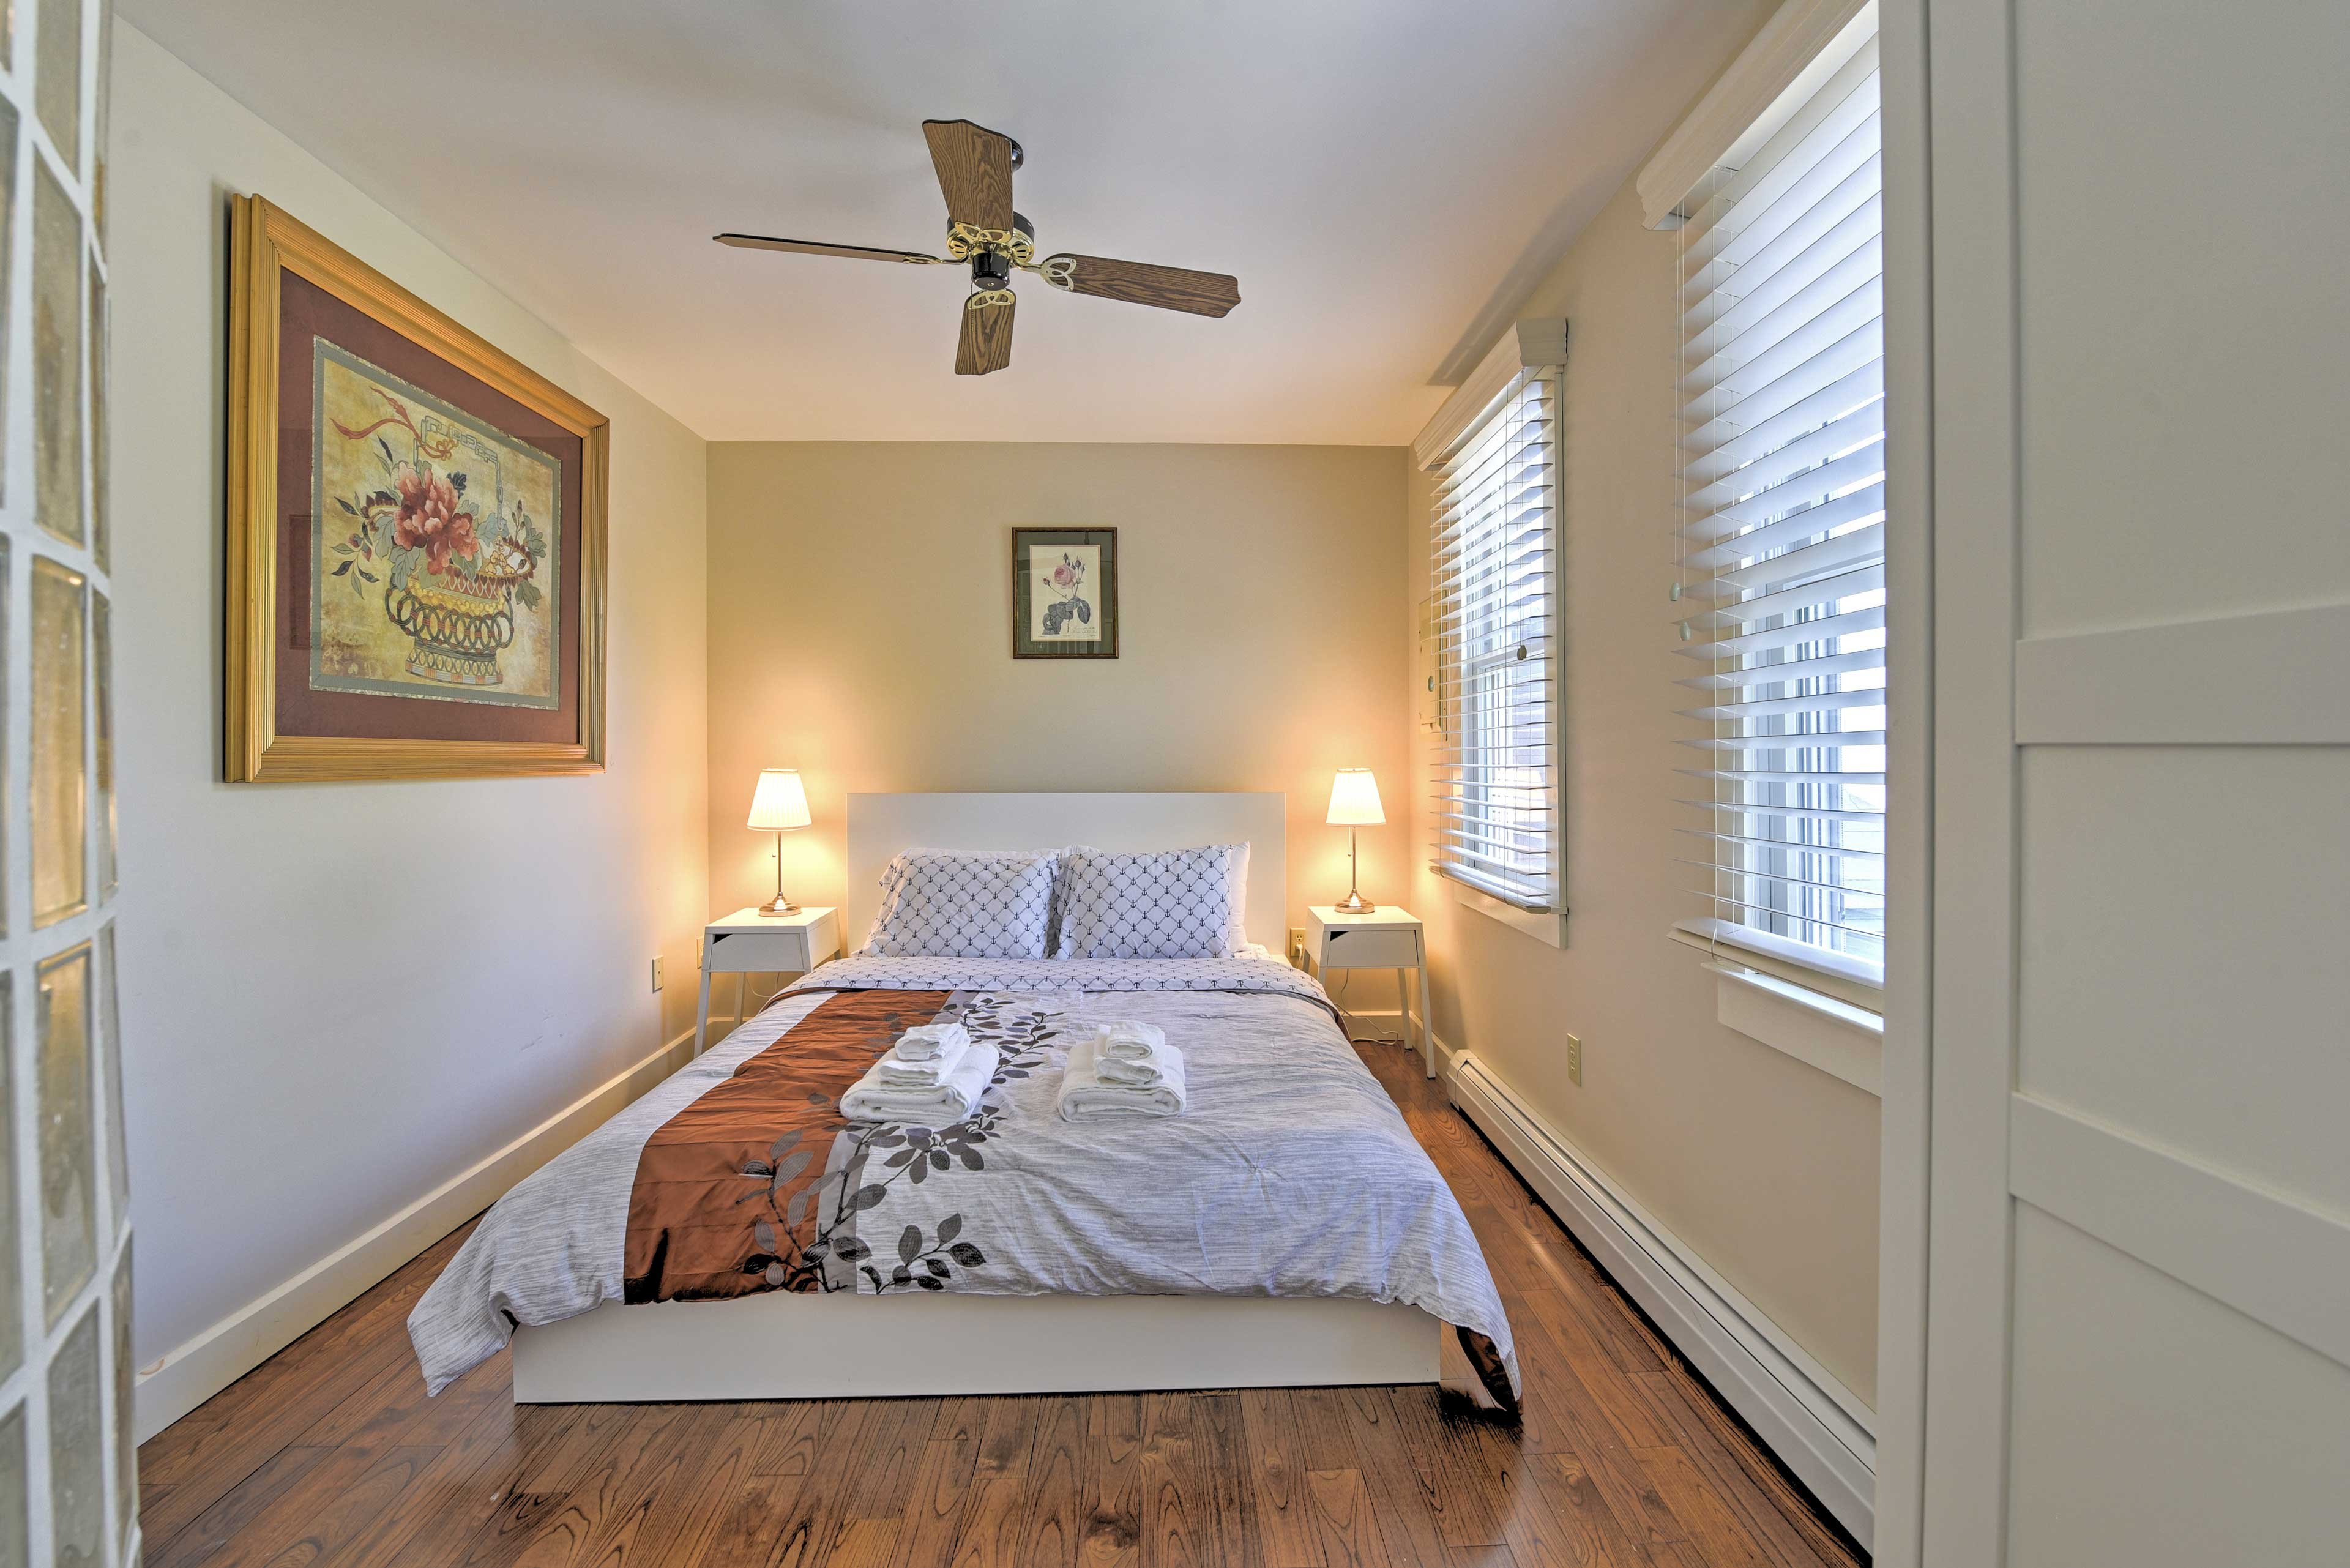 Two bedrooms comfortably sleep 4 guests.